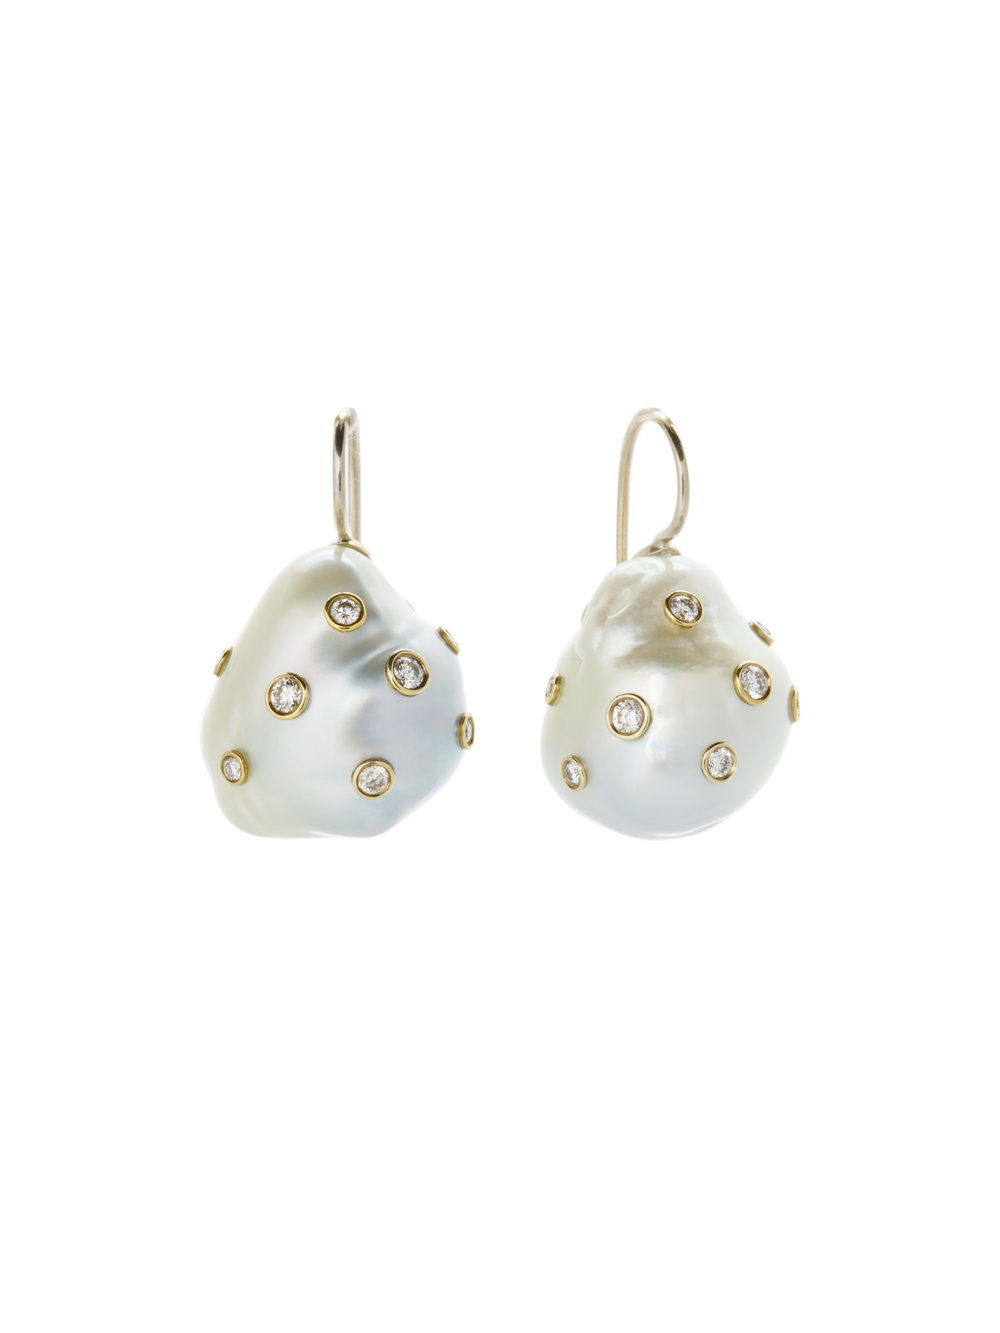 BAROQUE EARRINGS   BAROQUE PEARLS  .48 CT OF DIAMONDS      Contact for inquiry